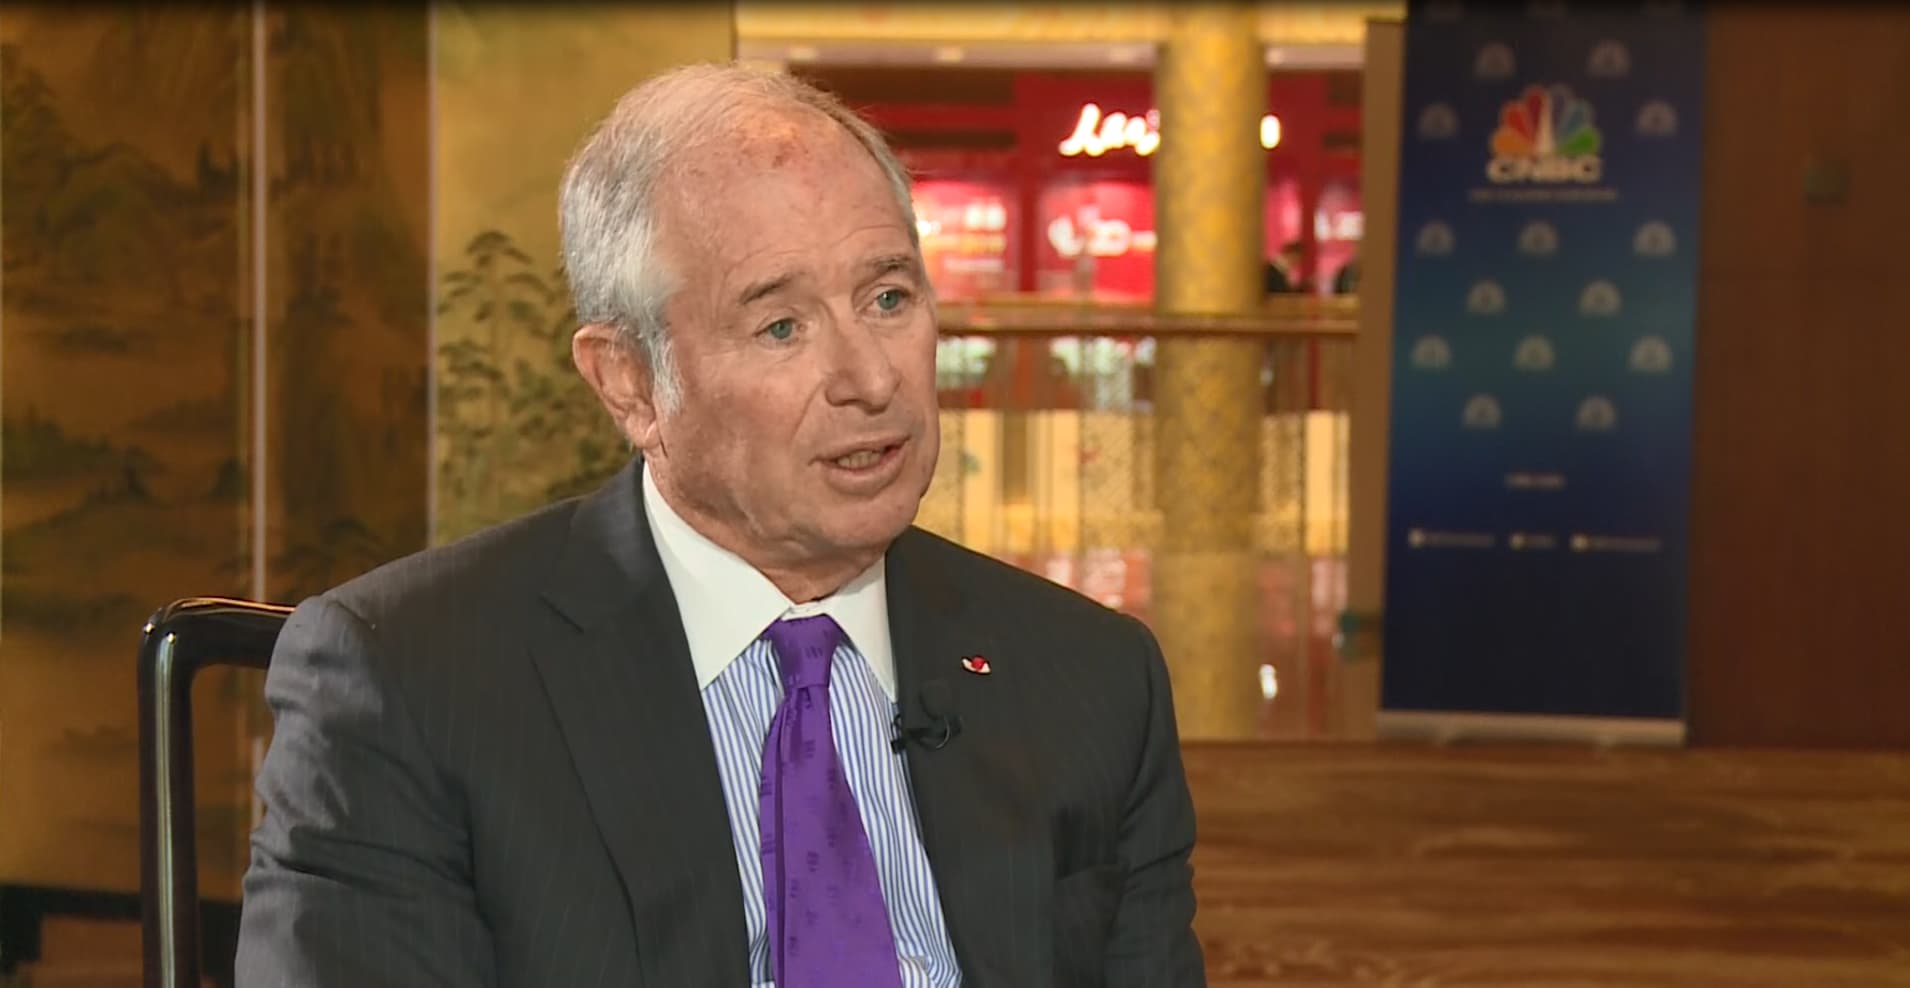 Blackstone's Schwarzman says it 'made no sense' that Trump would collude with Russia